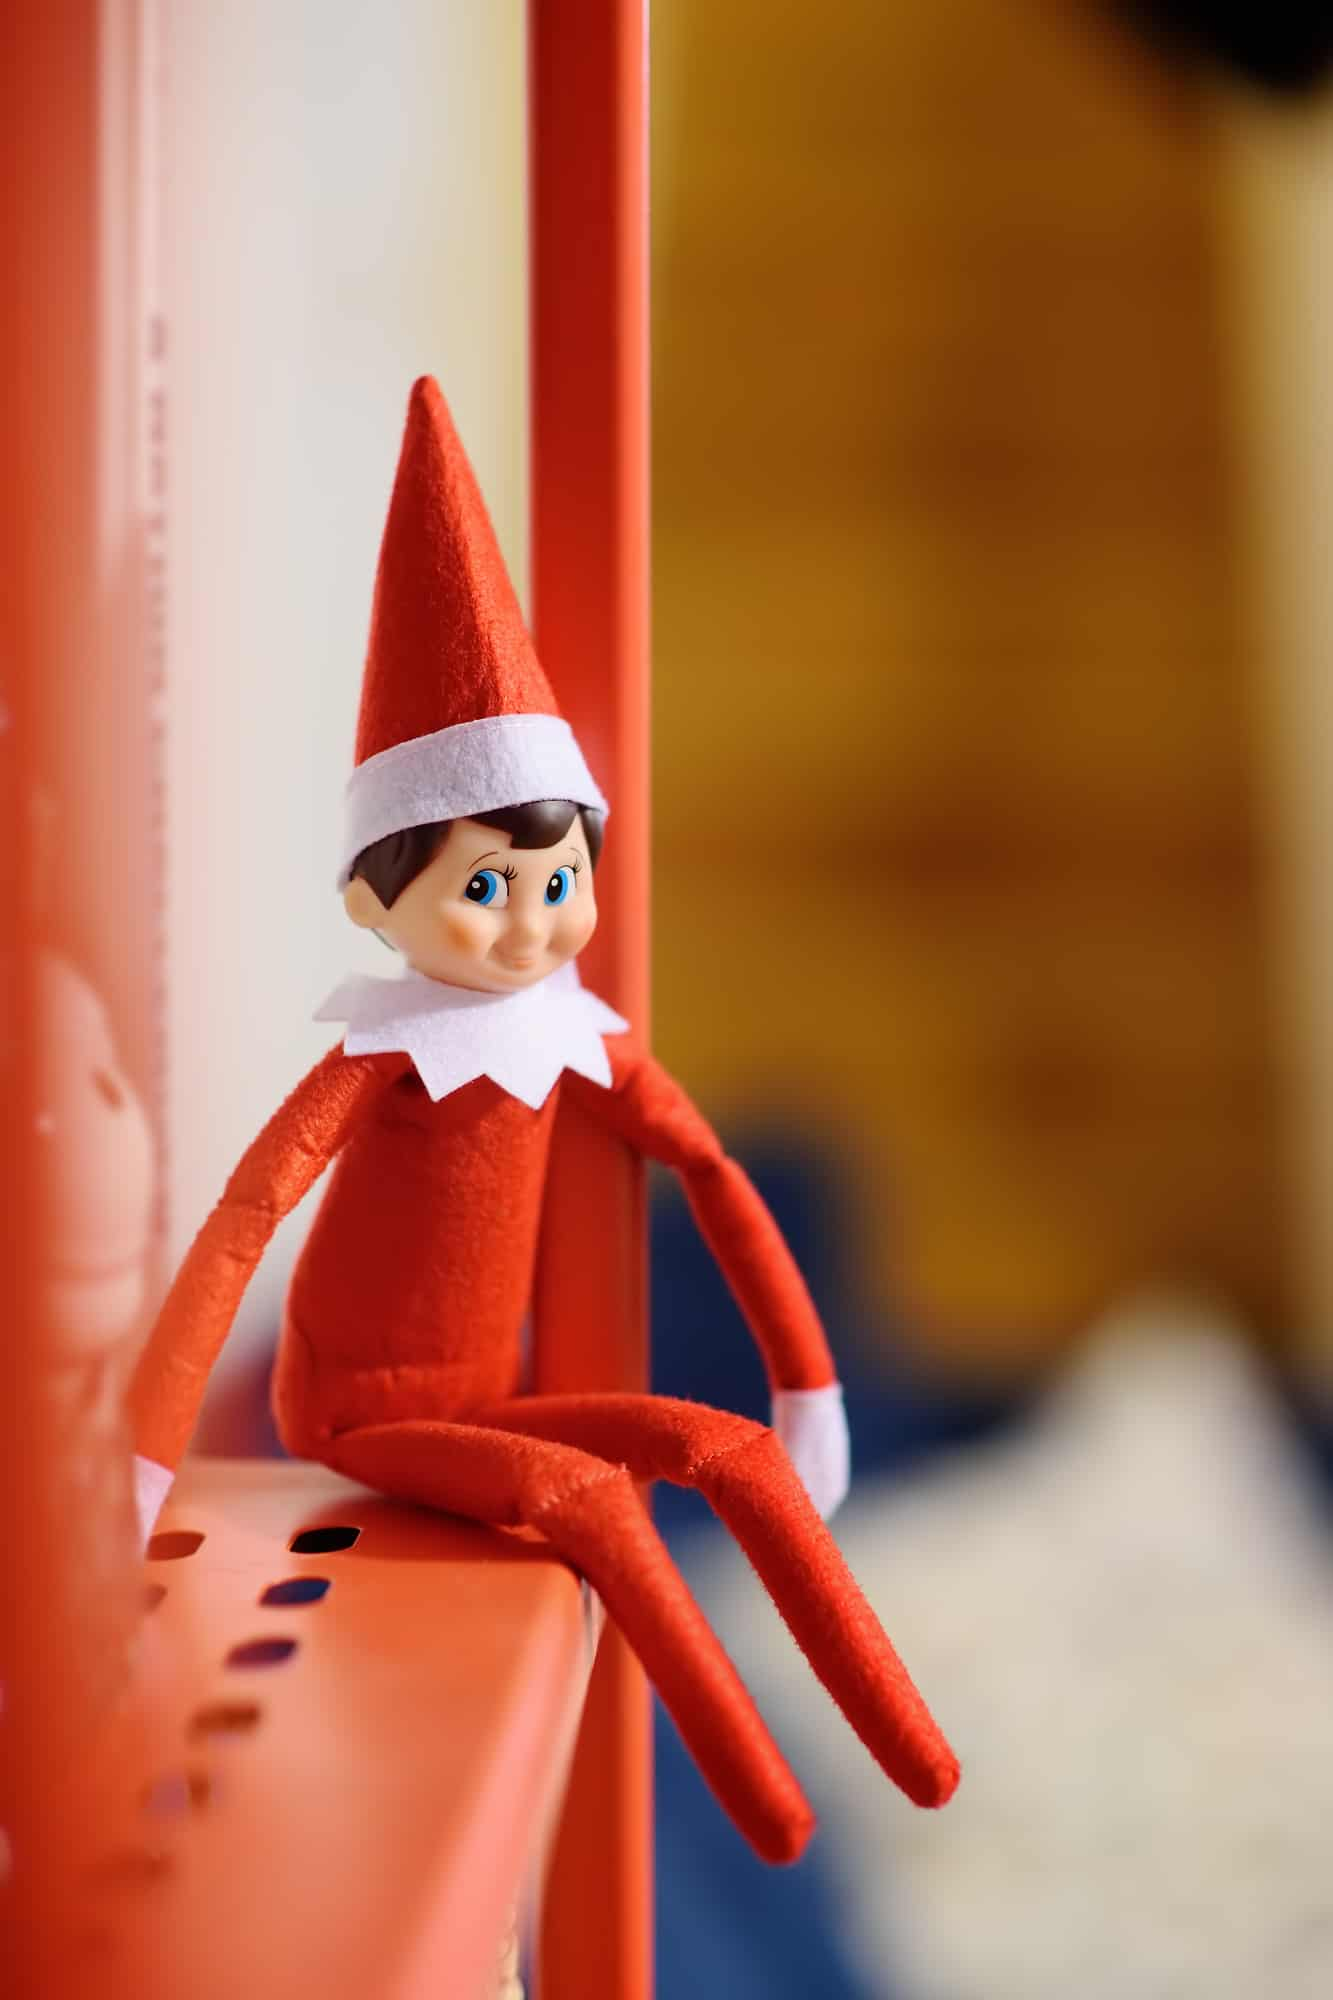 Elf on the shelf sitting on a shelf is part of this mega list of elf on the shelf ideas for toddlers that any busy, tired mom can do